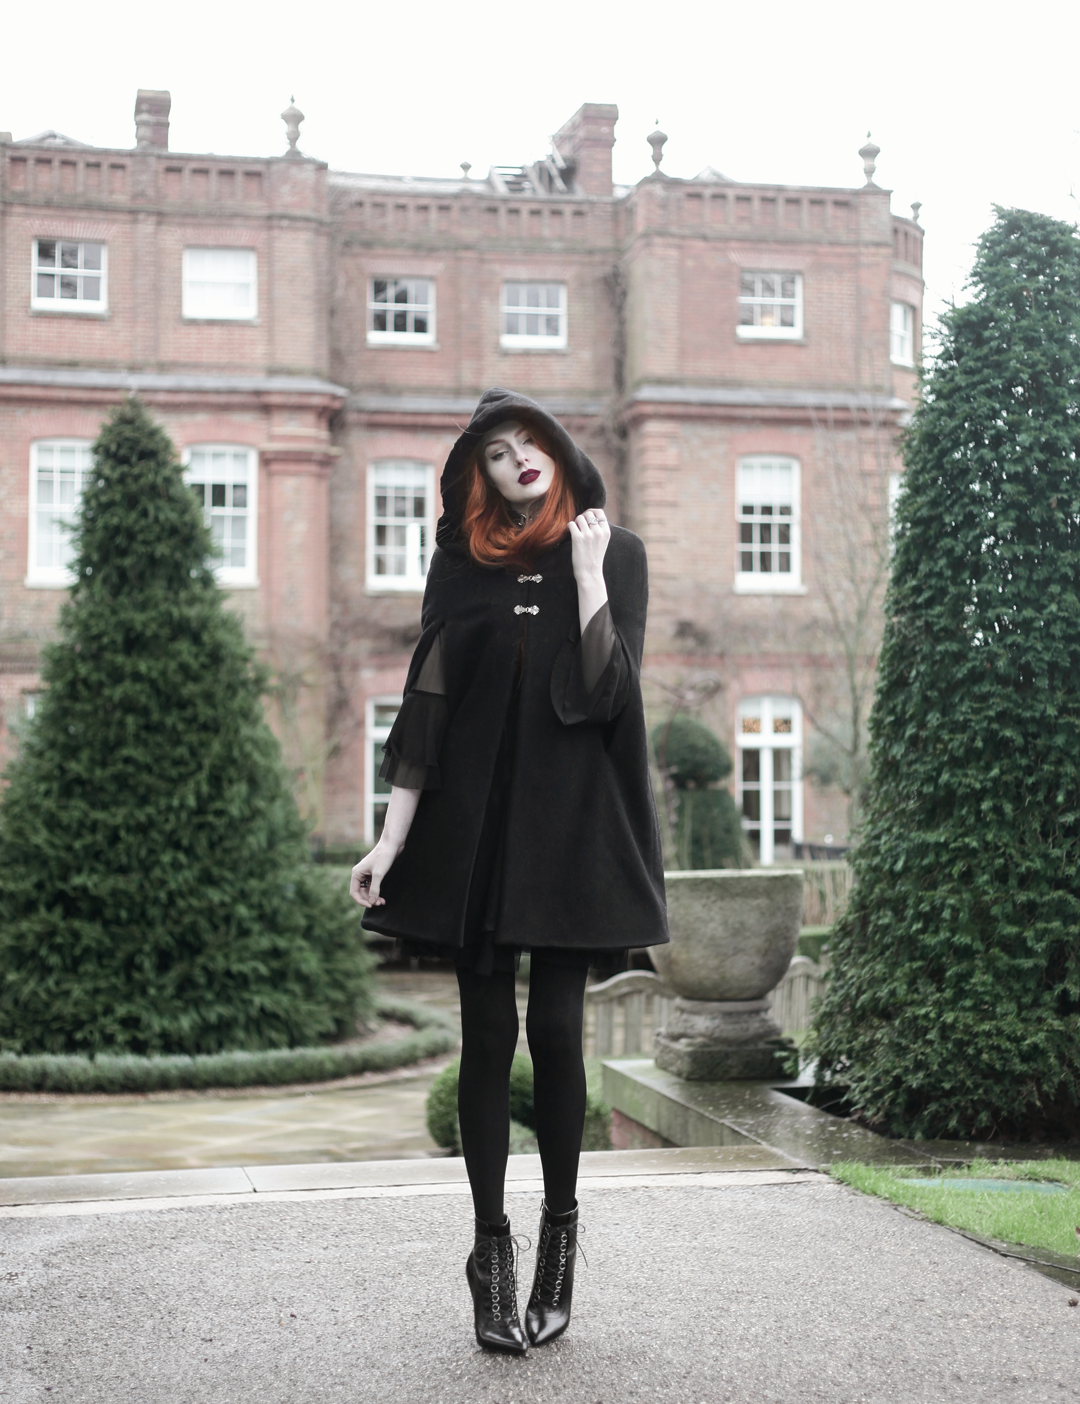 Olivia Emily wears Dark Thorn Clothing Cape, Killstar Nu Decay Dress, and Saint Laurent Fetish Ankle Boots